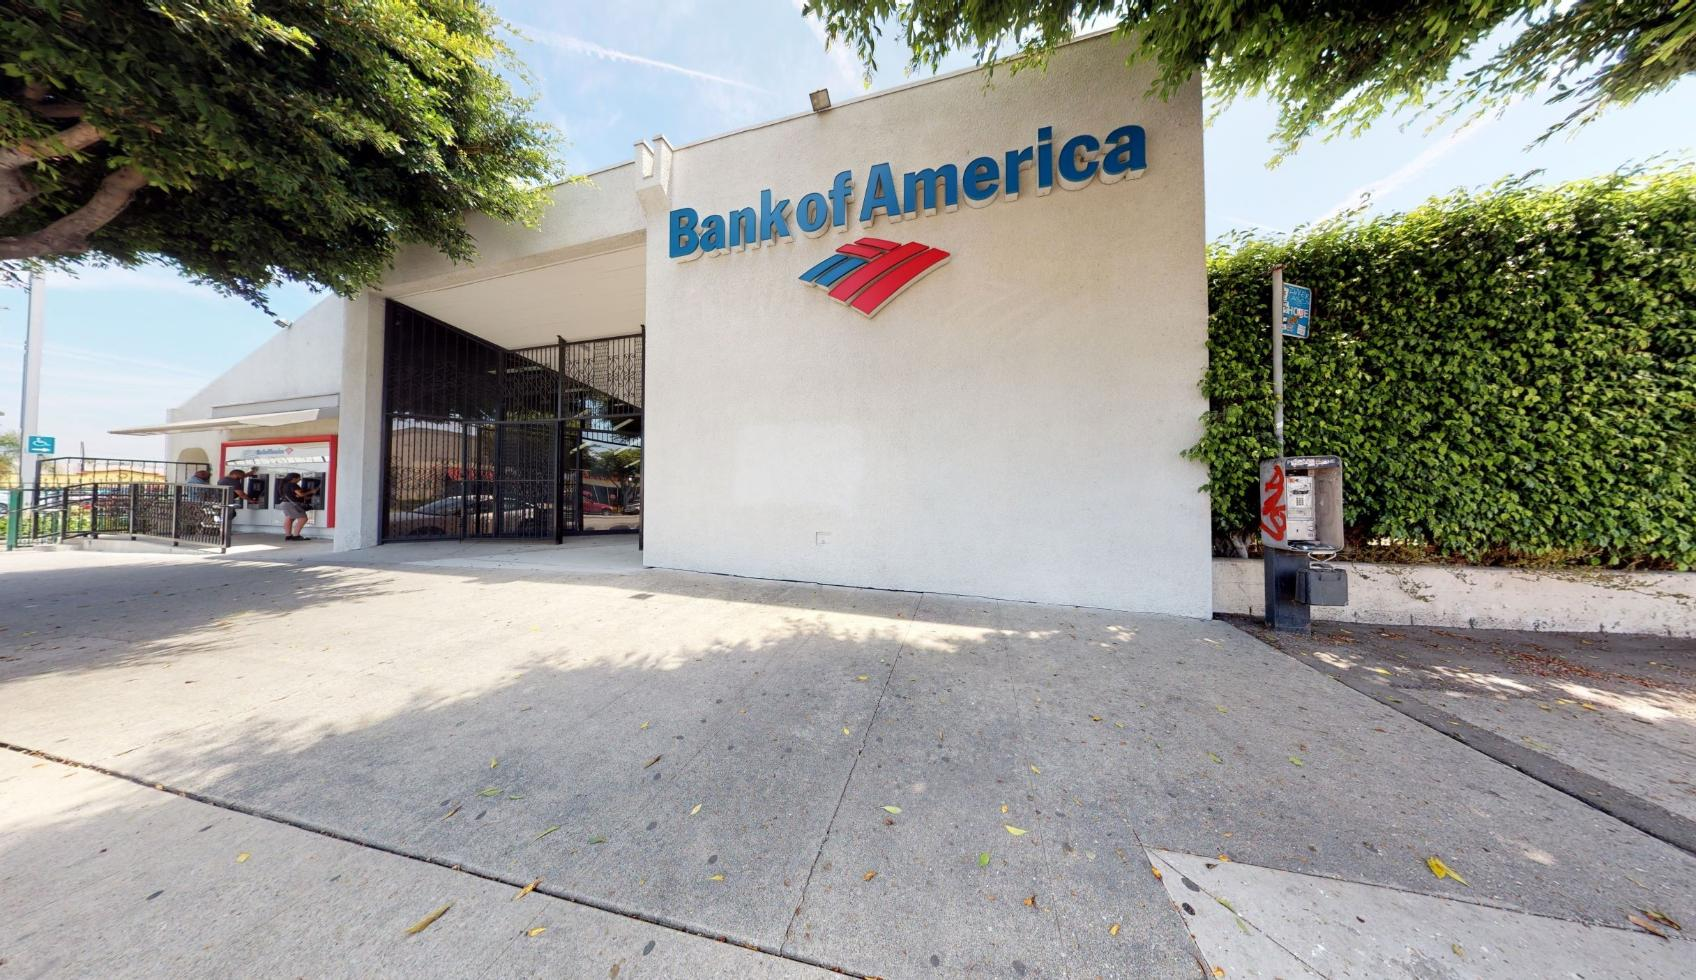 Bank of America financial center with walk-up ATM | 518 S Long Beach Blvd, Compton, CA 90221